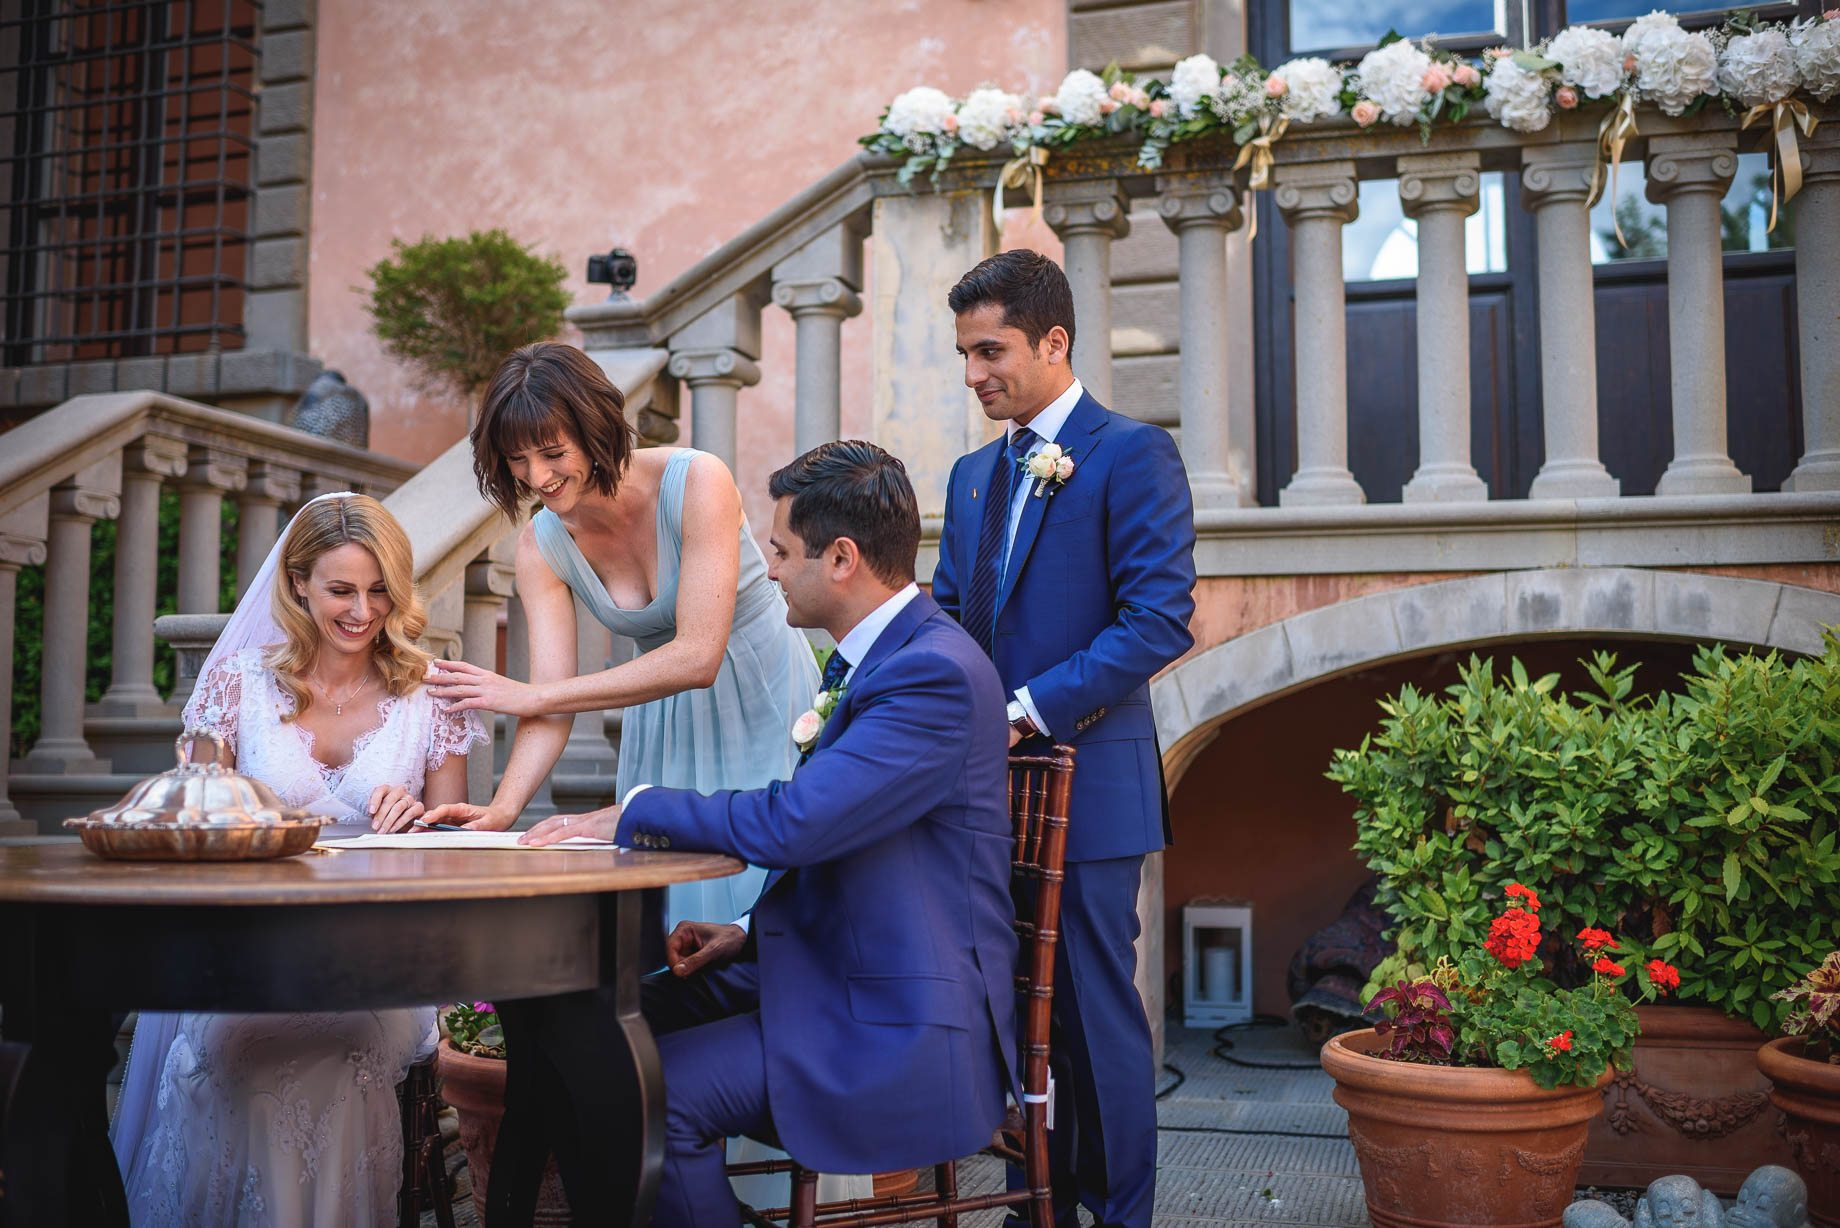 Tuscany wedding photography - Roisin and Moubin - Guy Collier Photography (111 of 251)